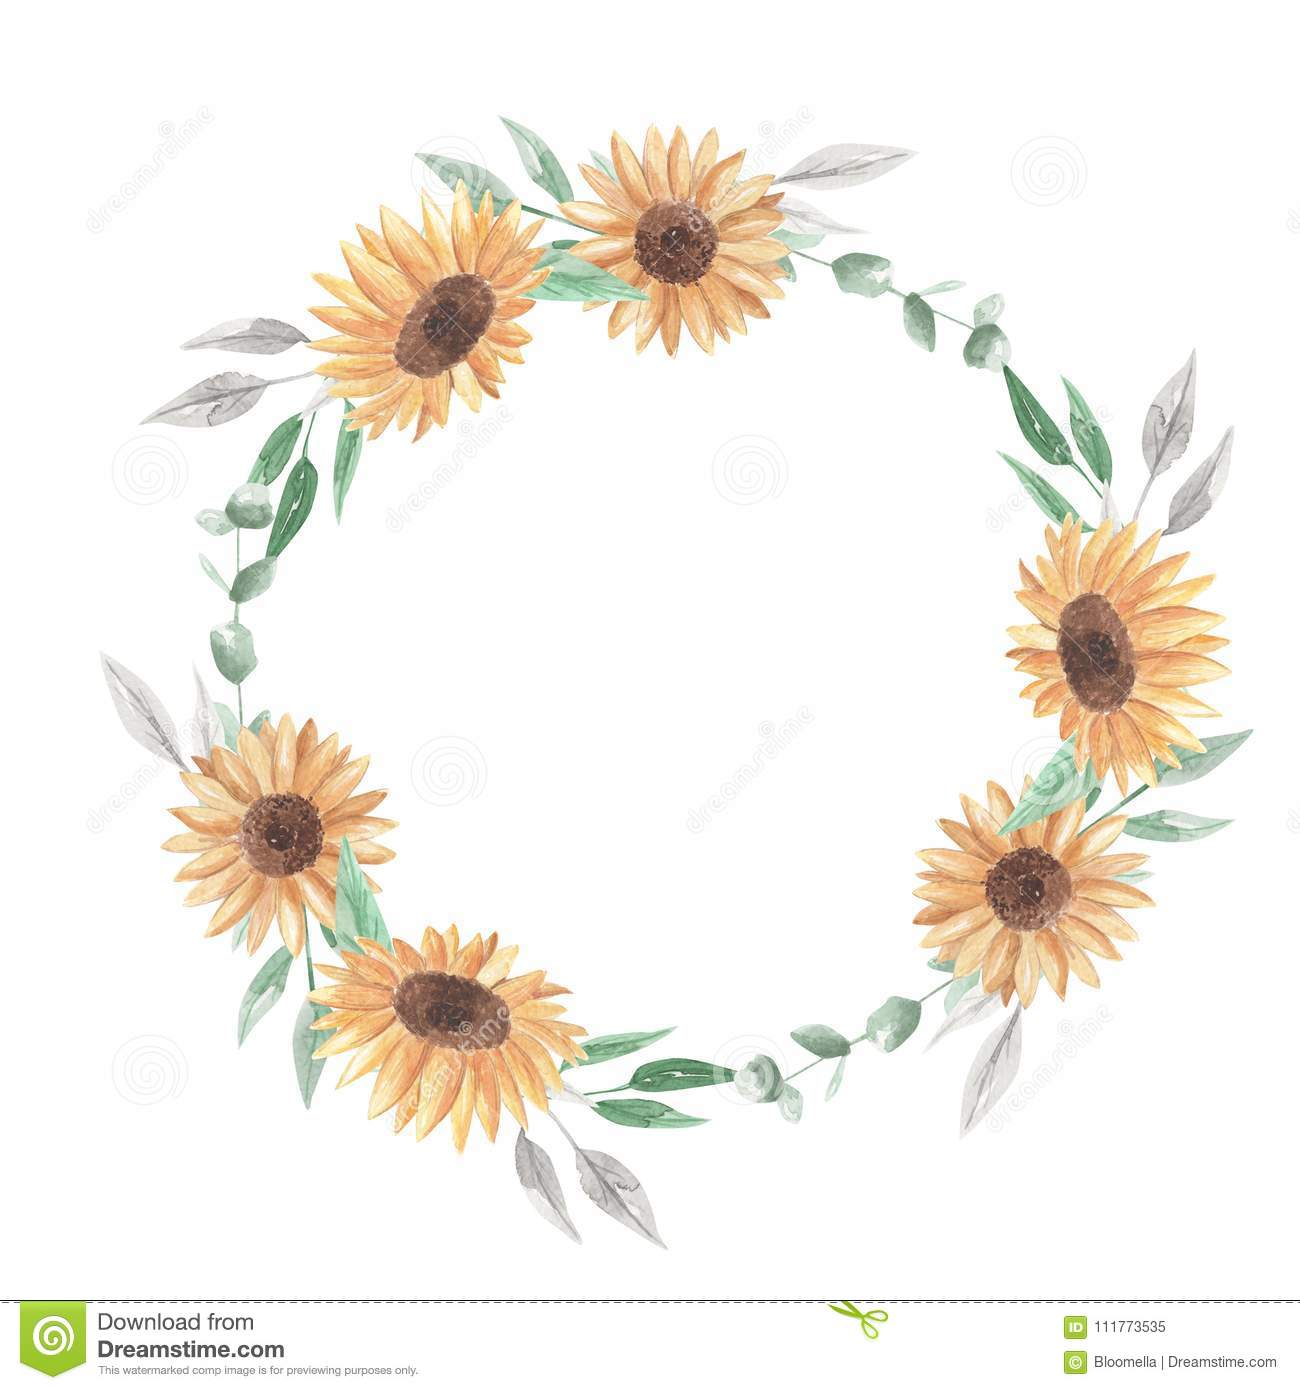 Sunflowers Watercolor Wreath Garland Clipart Flowers White Roses Stock Illustration Illustration Of Colors Botanical 111773535